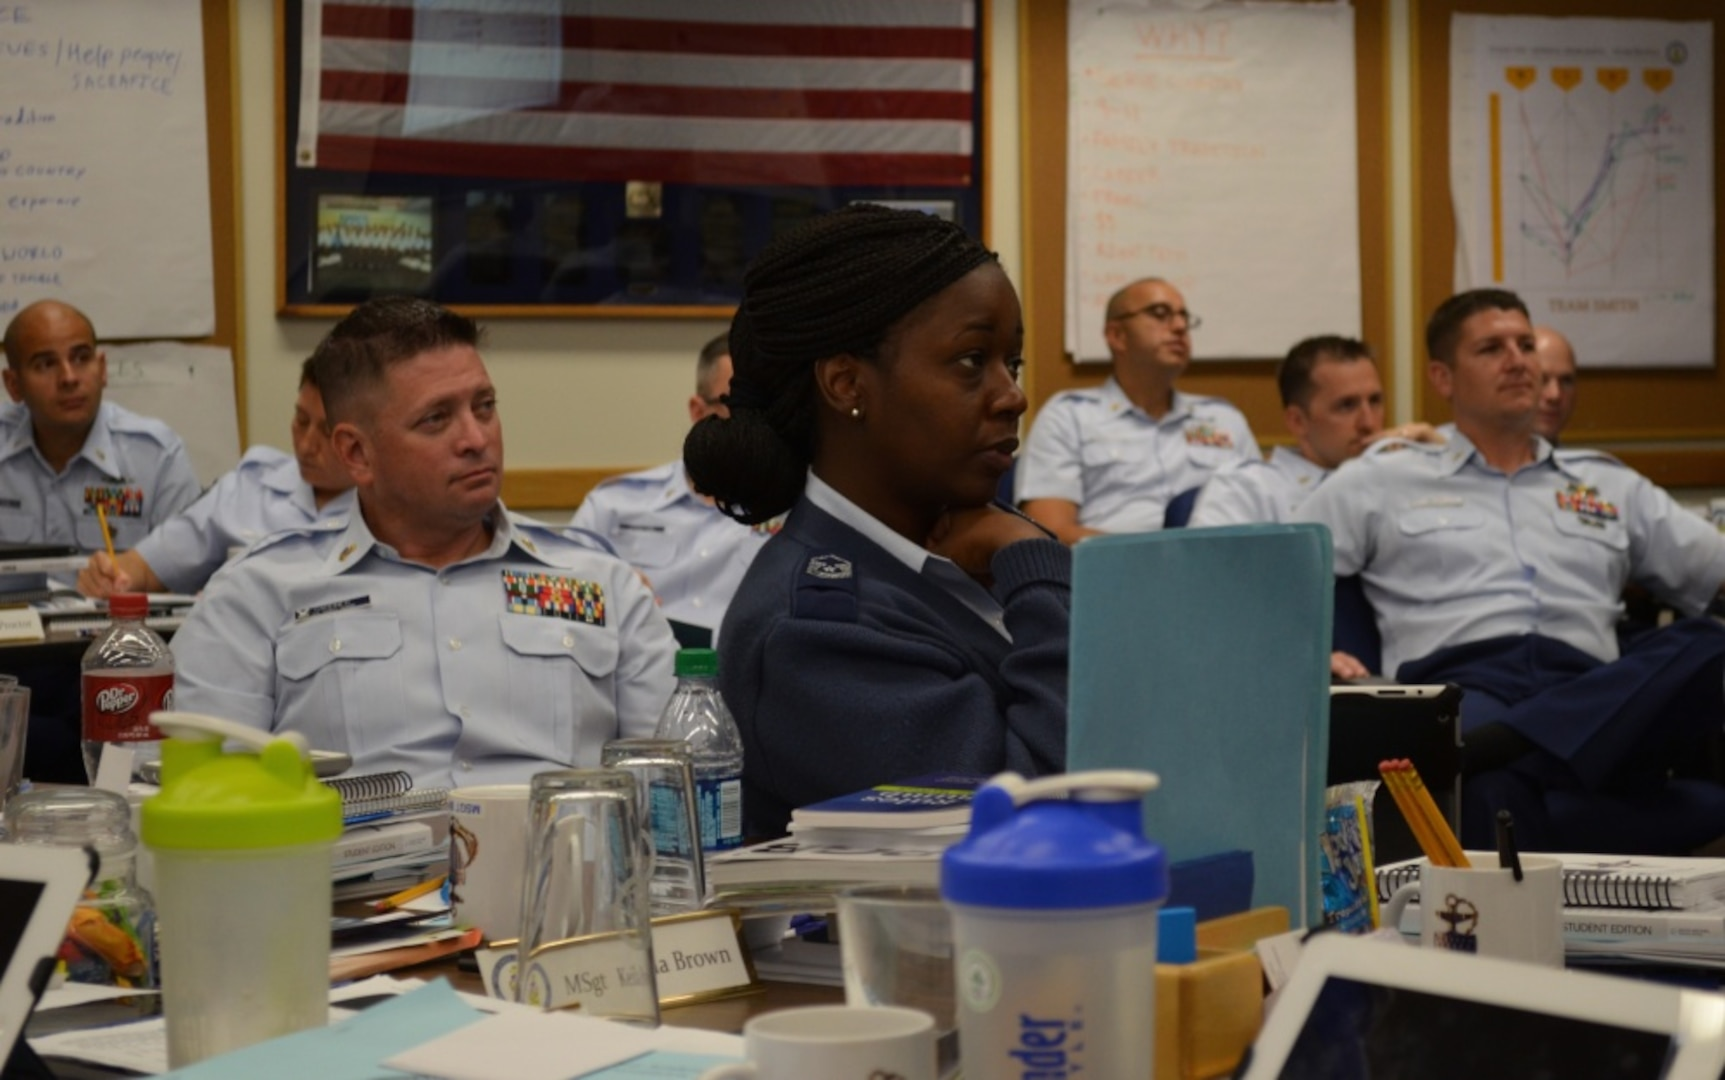 Air Force Master Sgt. Kelisha Brown and fellow Coast Guard senior enlisted leaders listen to leadership best practices as part of the Coast Guard Chief Petty Officers' Academy at Coast Guard Training Center Petaluma, Sept. 4, 2014. The monthlong course, which is open to a select few senior enlisted leaders from other military services, helps prepare new Coast Guard chiefs for the increased responsibility they take on as members of the Chief Petty Officer Corps. Instruction is provided in work-life, wellness, human resource management, oral and written communications, career management, human relations and military customs and courtesies.